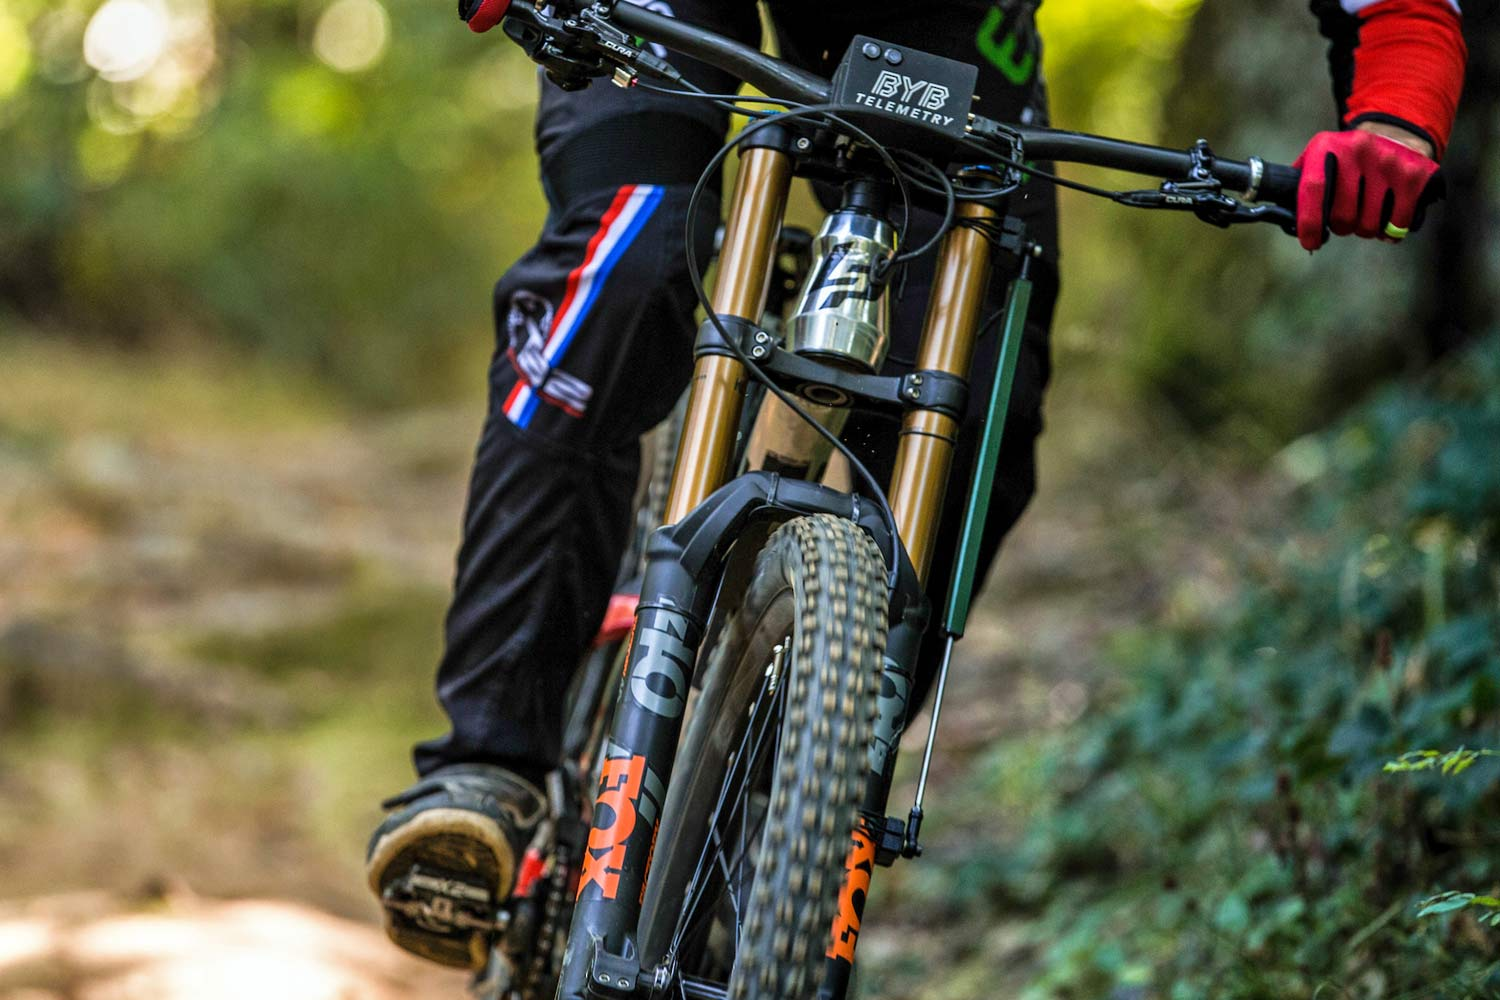 BYB Telemetry offers pro level suspension analysis & tuning for